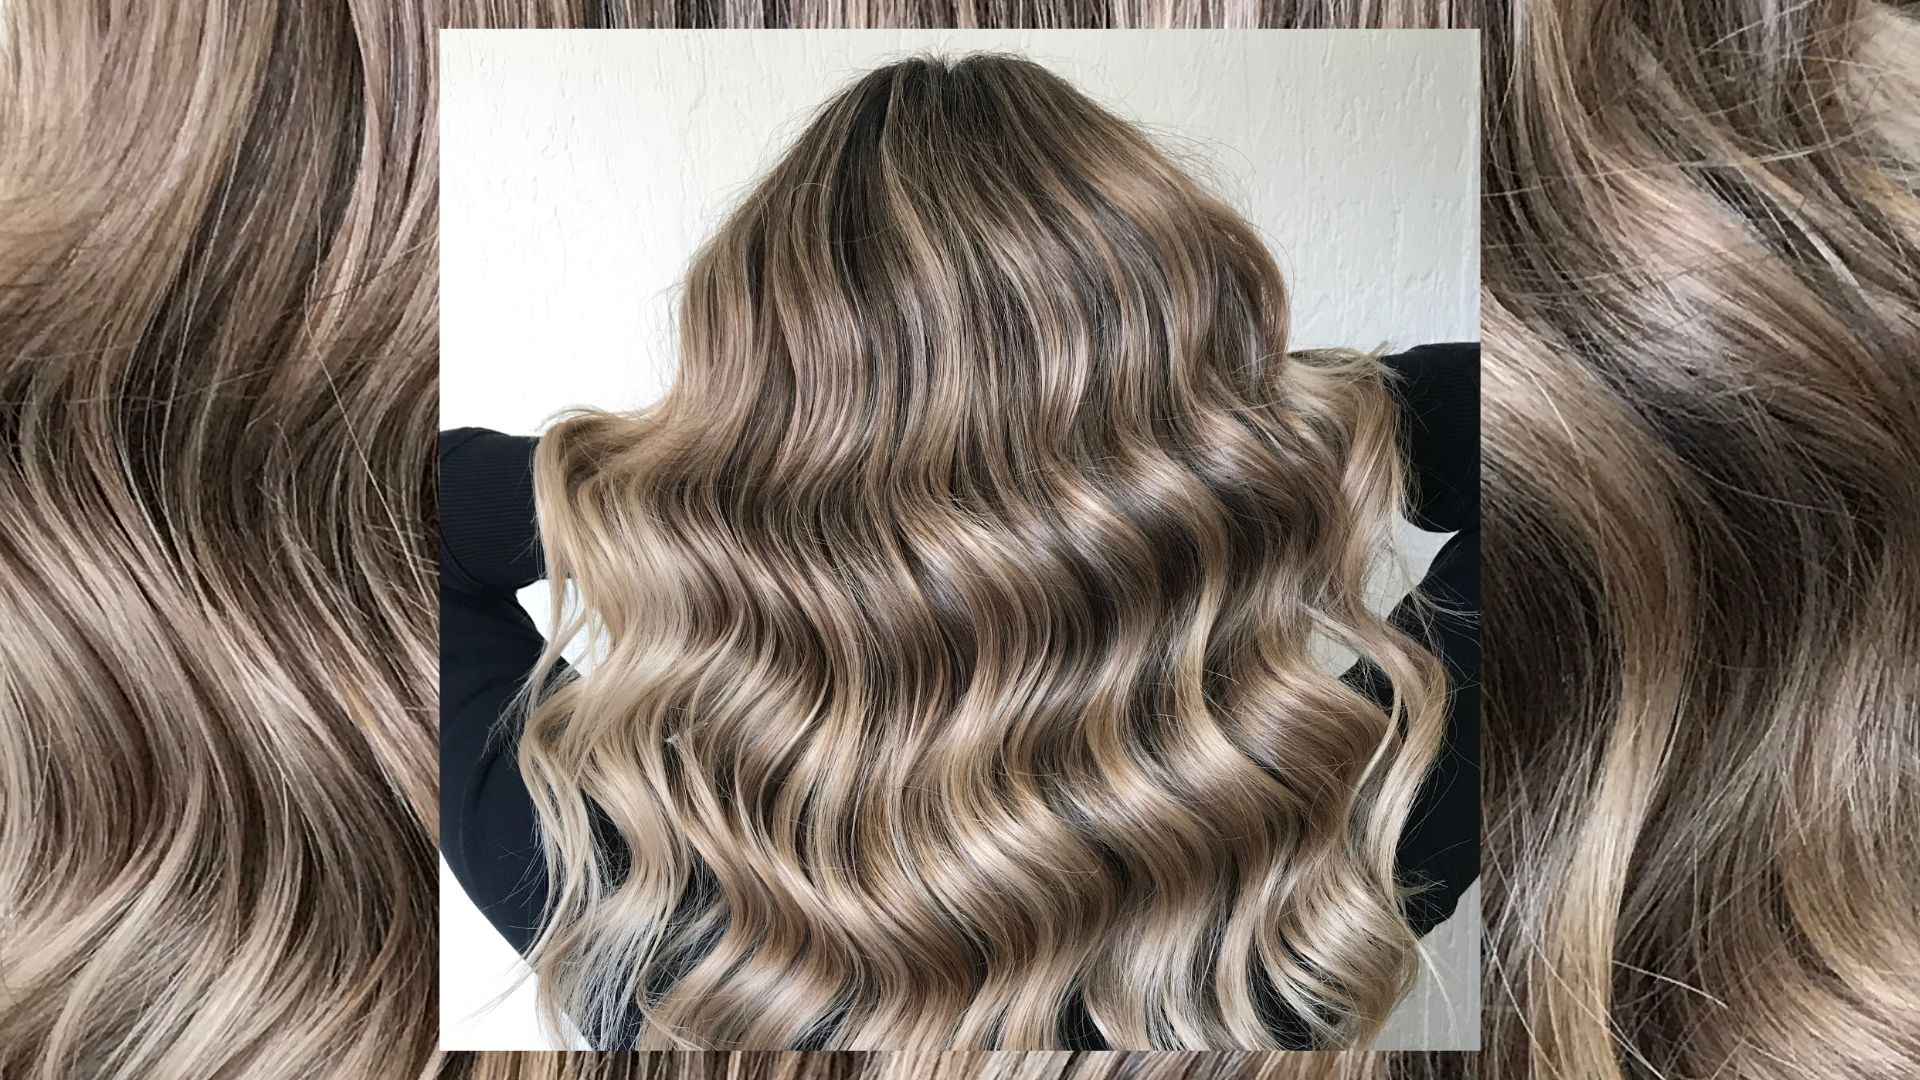 revlon editorial root smudging hair color technique hero